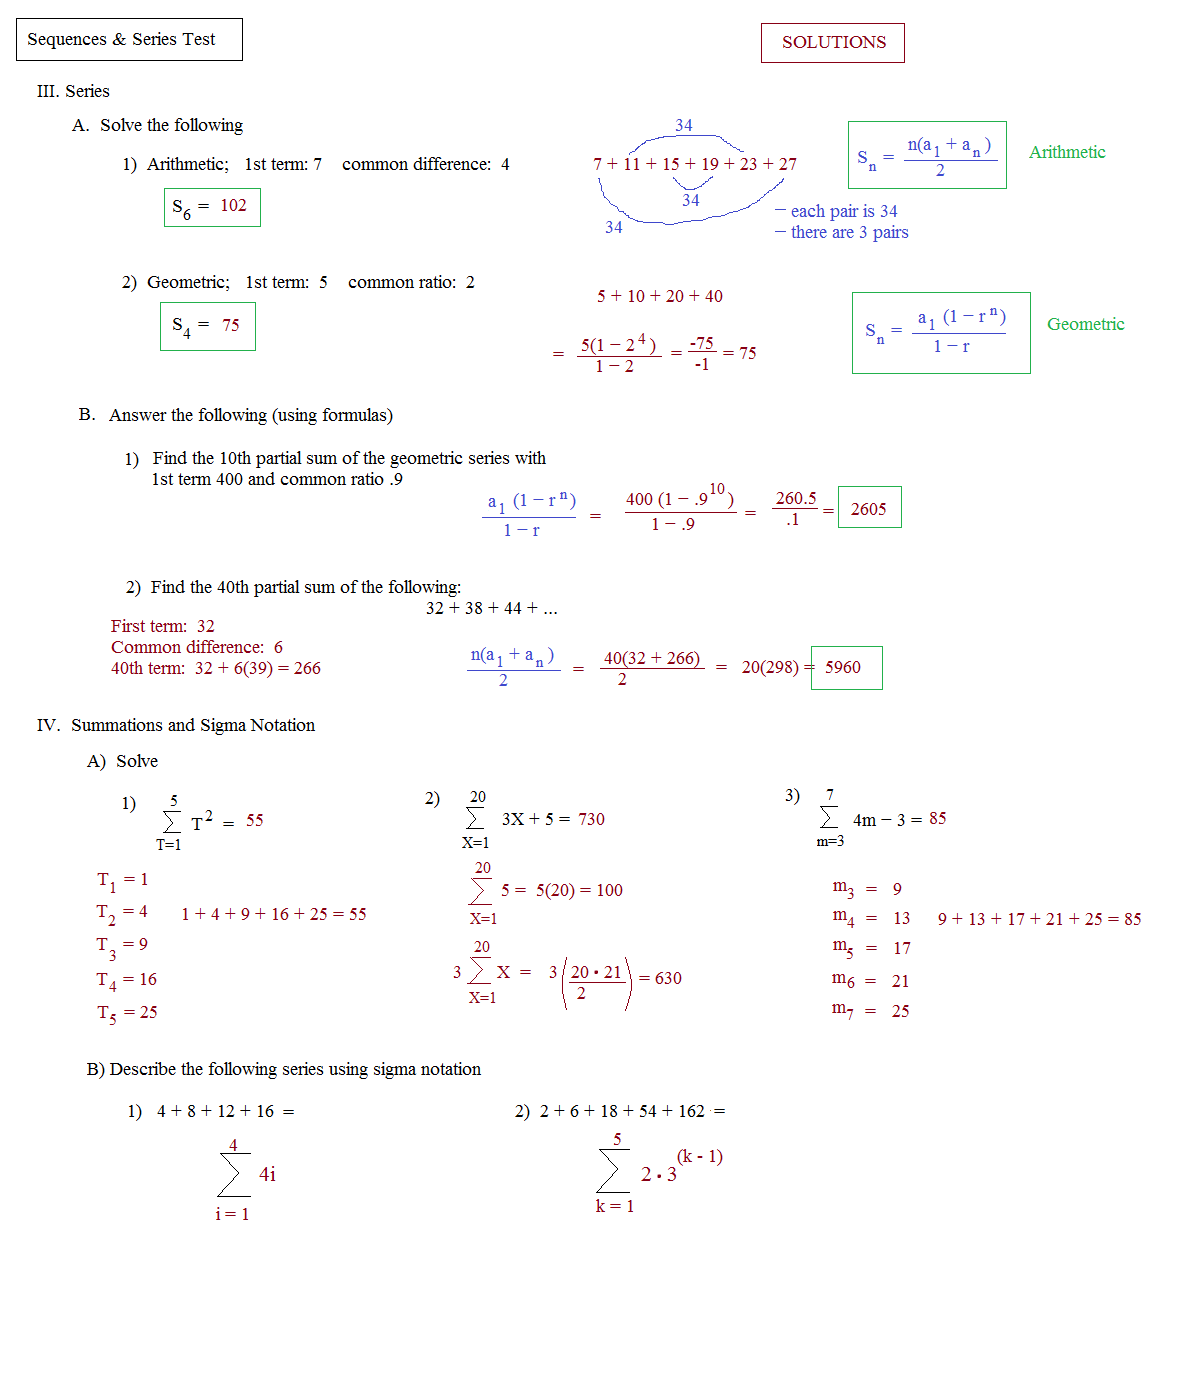 Worksheets Sequences And Series Worksheets math plane sequences and series i mathplane test 2 solutions